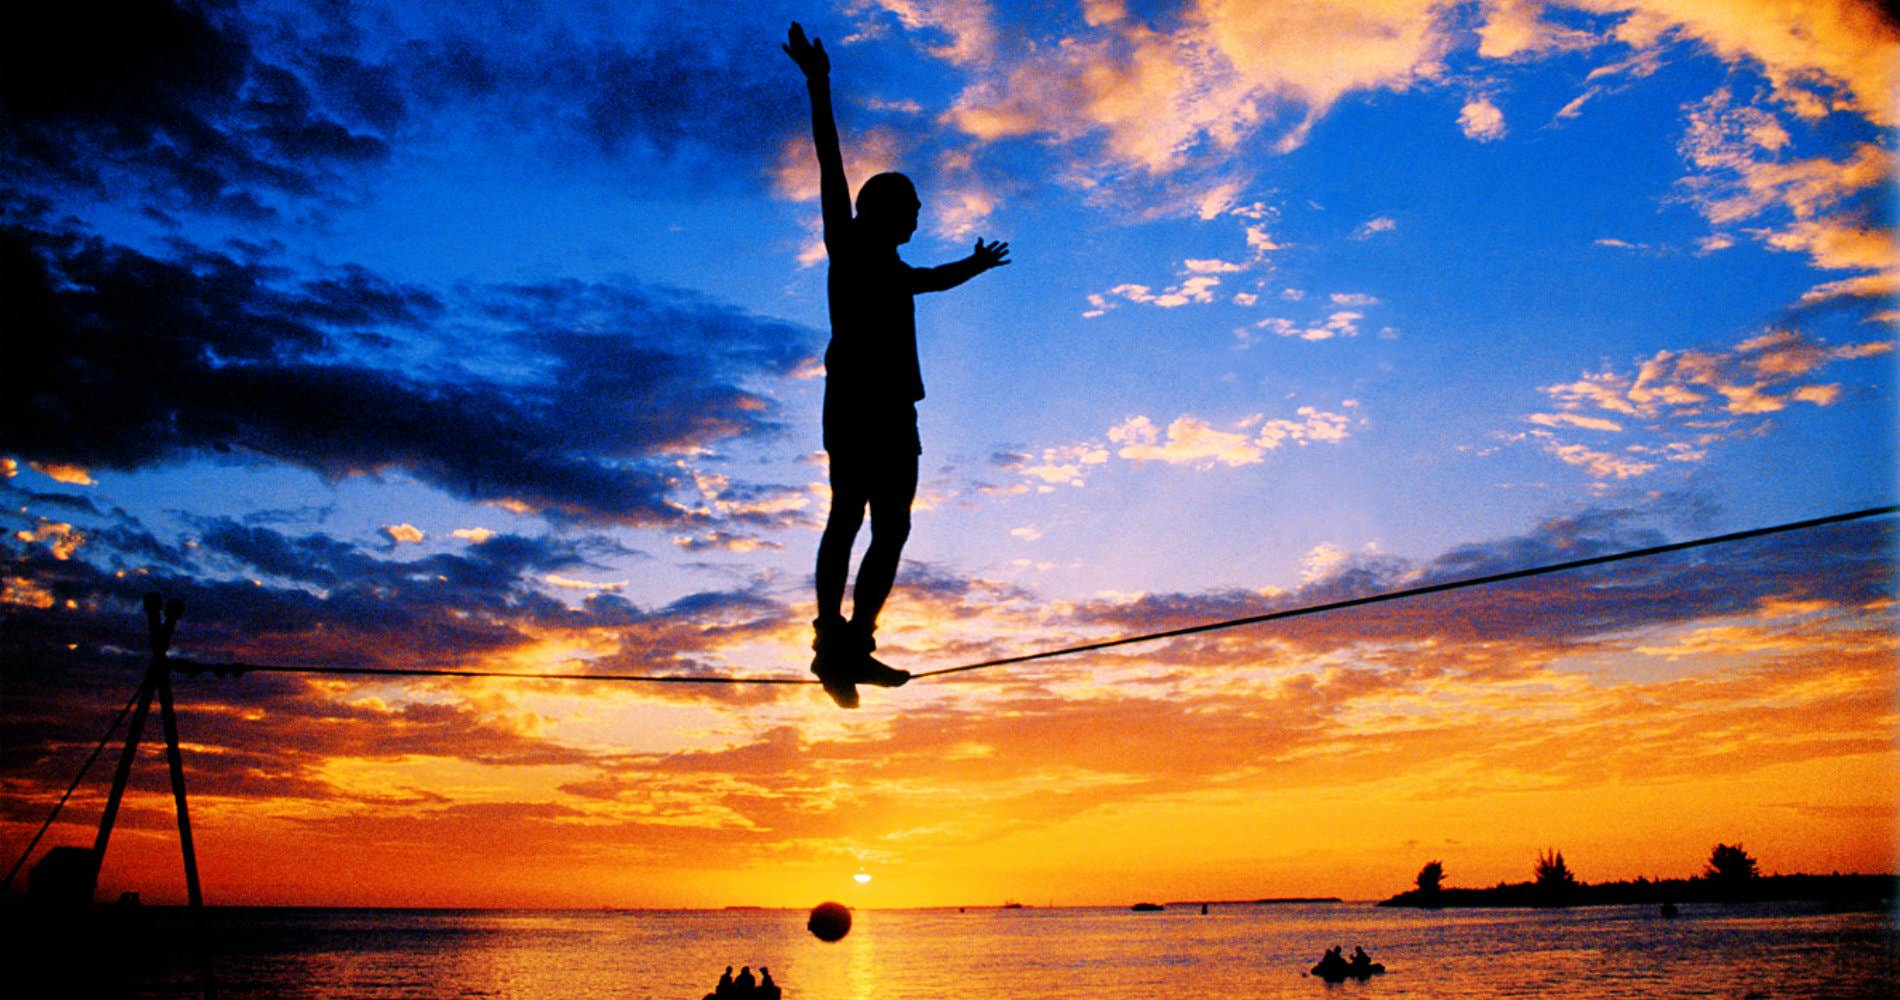 Silhouette figure standing on tightrope over the ocean with sun setting in background